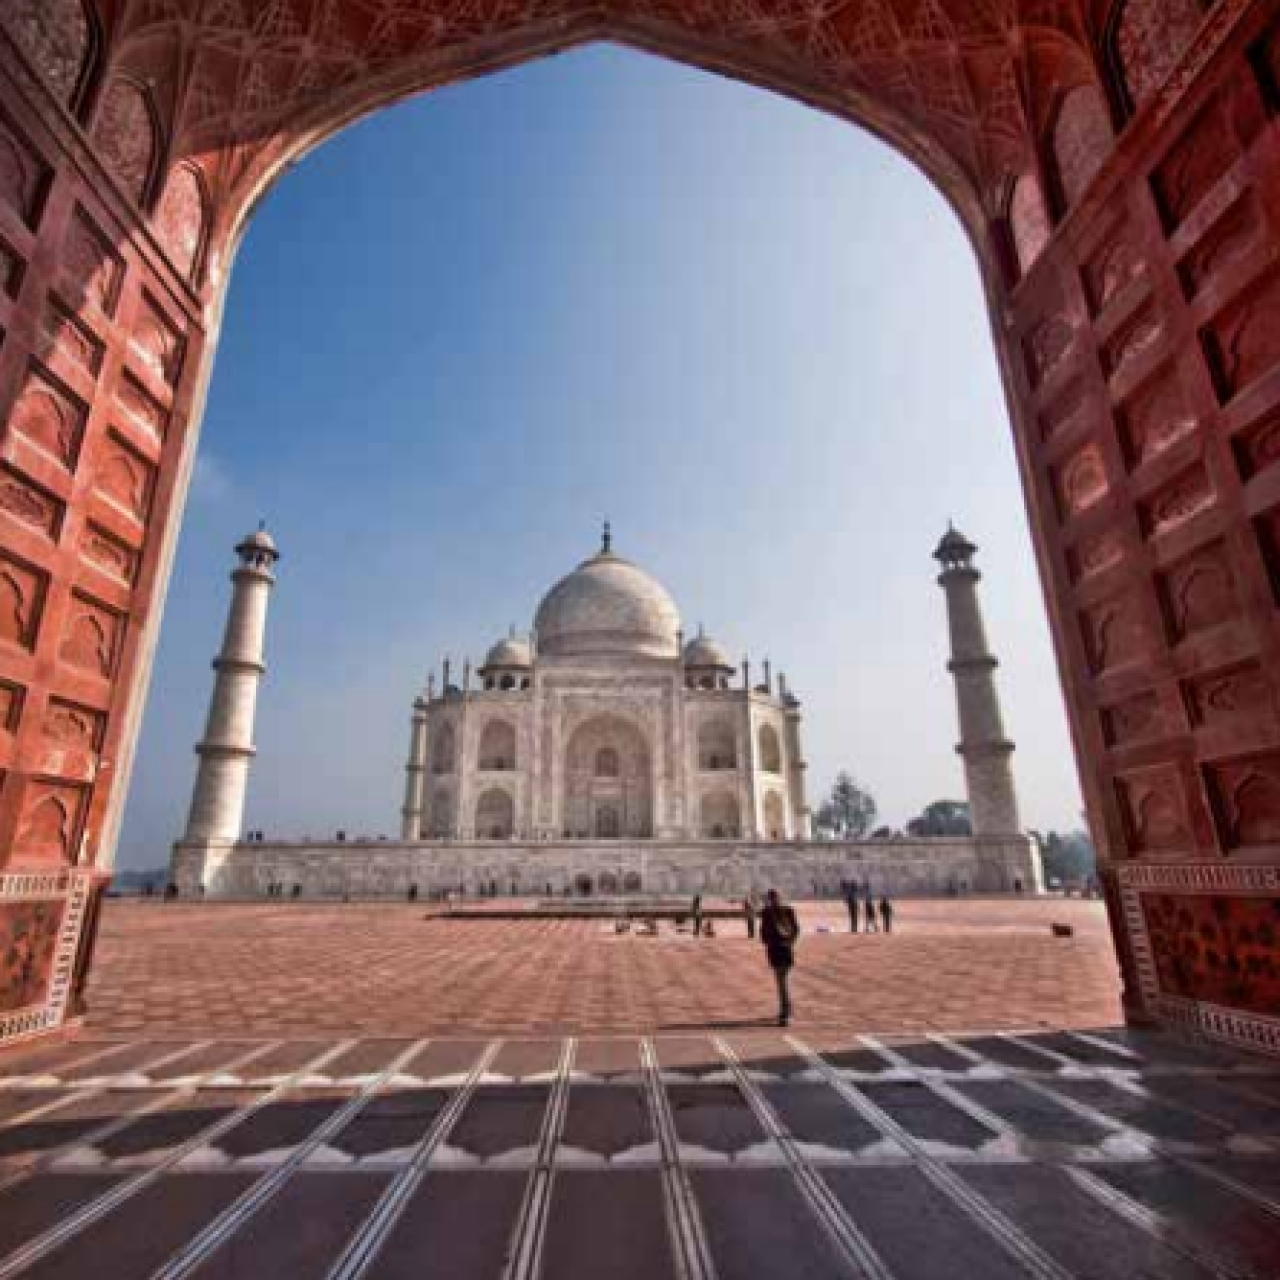 """Many Hindu 'history rewriters' put out claims  that would make legitimate historians shudder.  Like the Taj Mahal was a Hindu temple."""